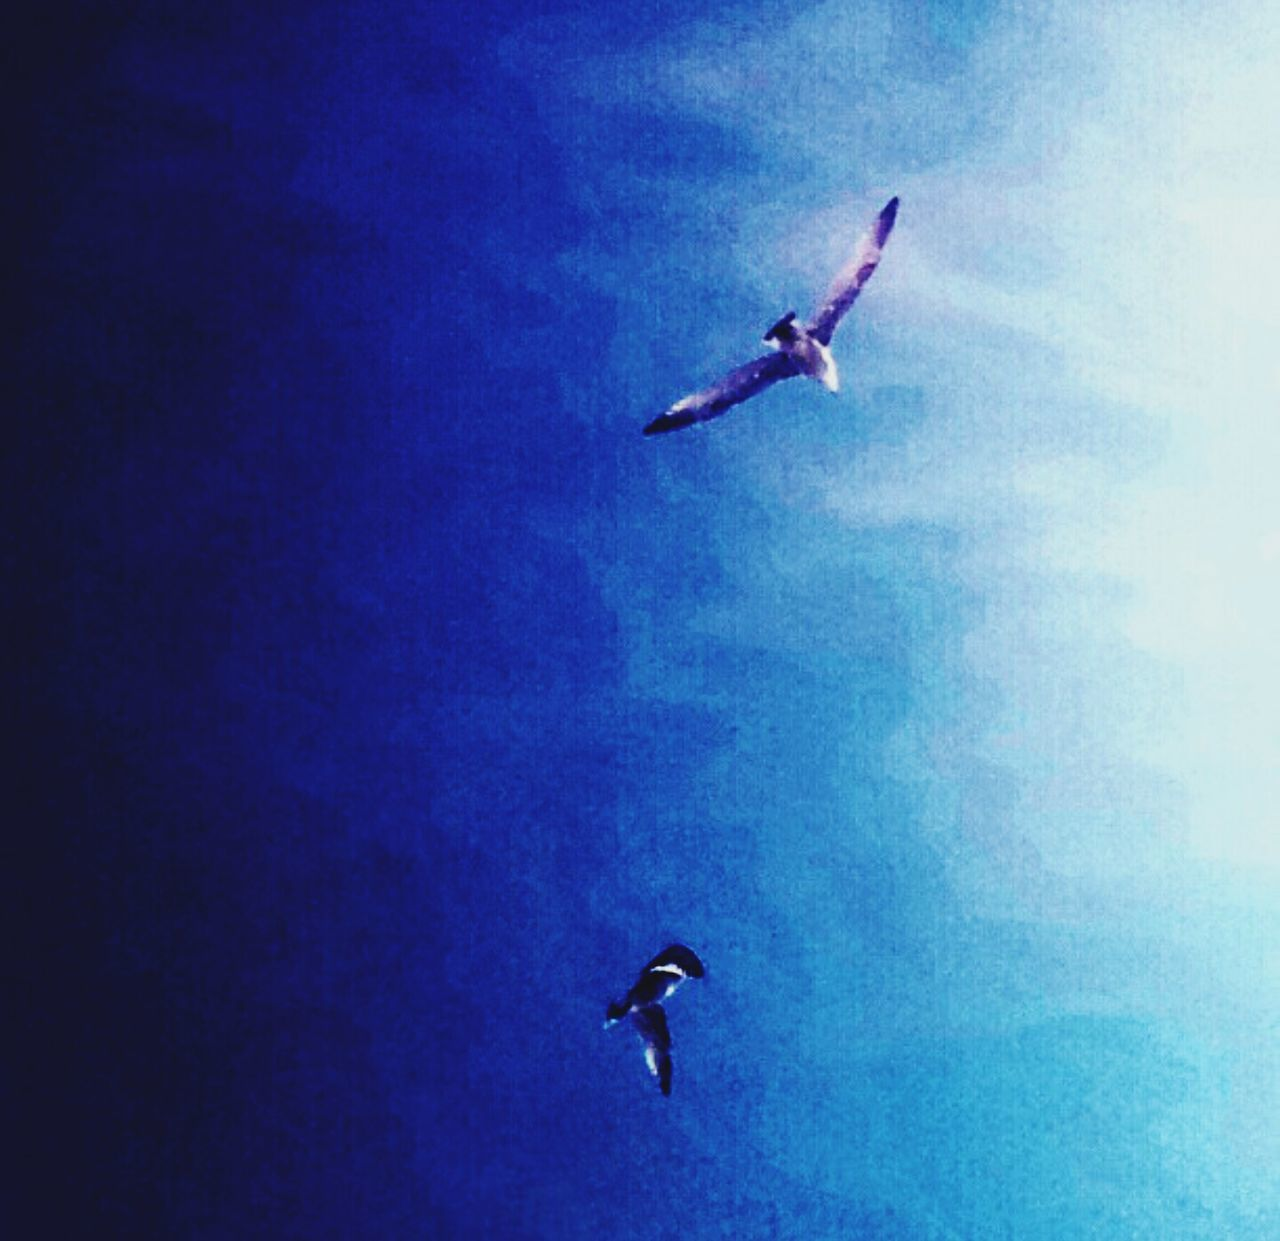 flying, mid-air, bird, full length, day, sky, outdoors, animal themes, motion, animals in the wild, blue, low angle view, spread wings, nature, one person, water, energetic, people